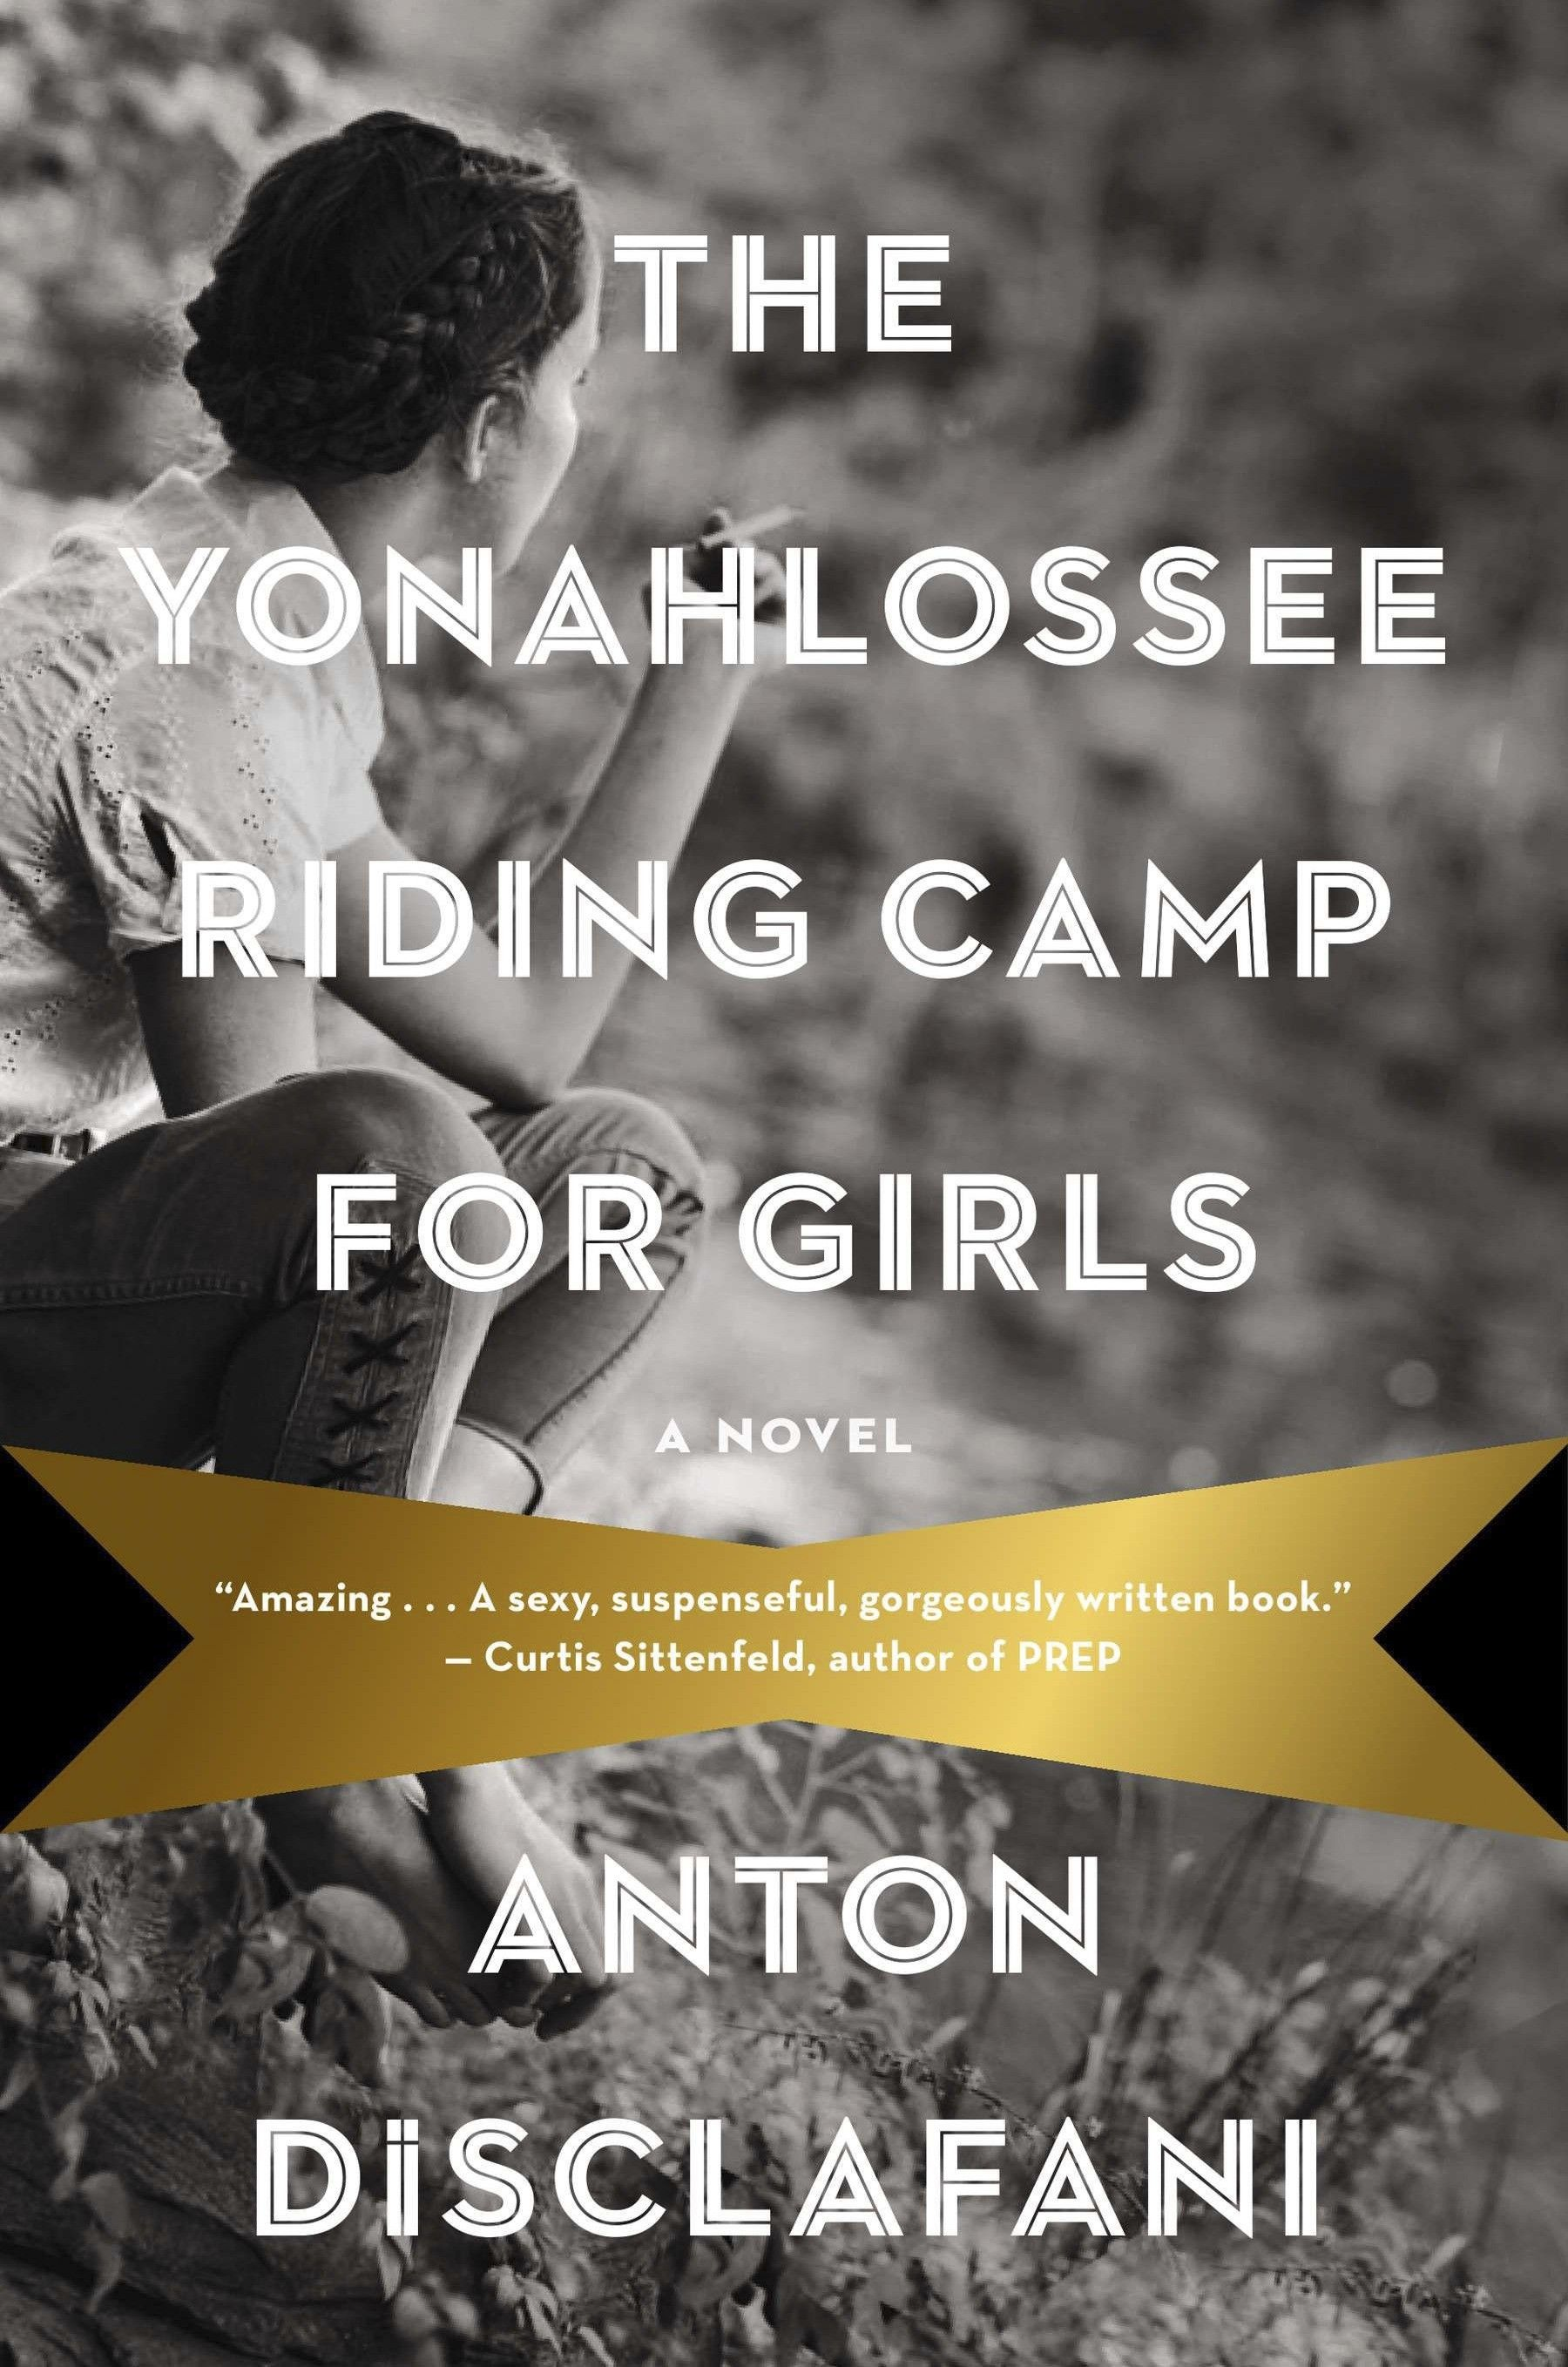 The Yonahlossee Riding Camp For Girls - After her mysterious role in a family scandal, 15-year-old Thea A